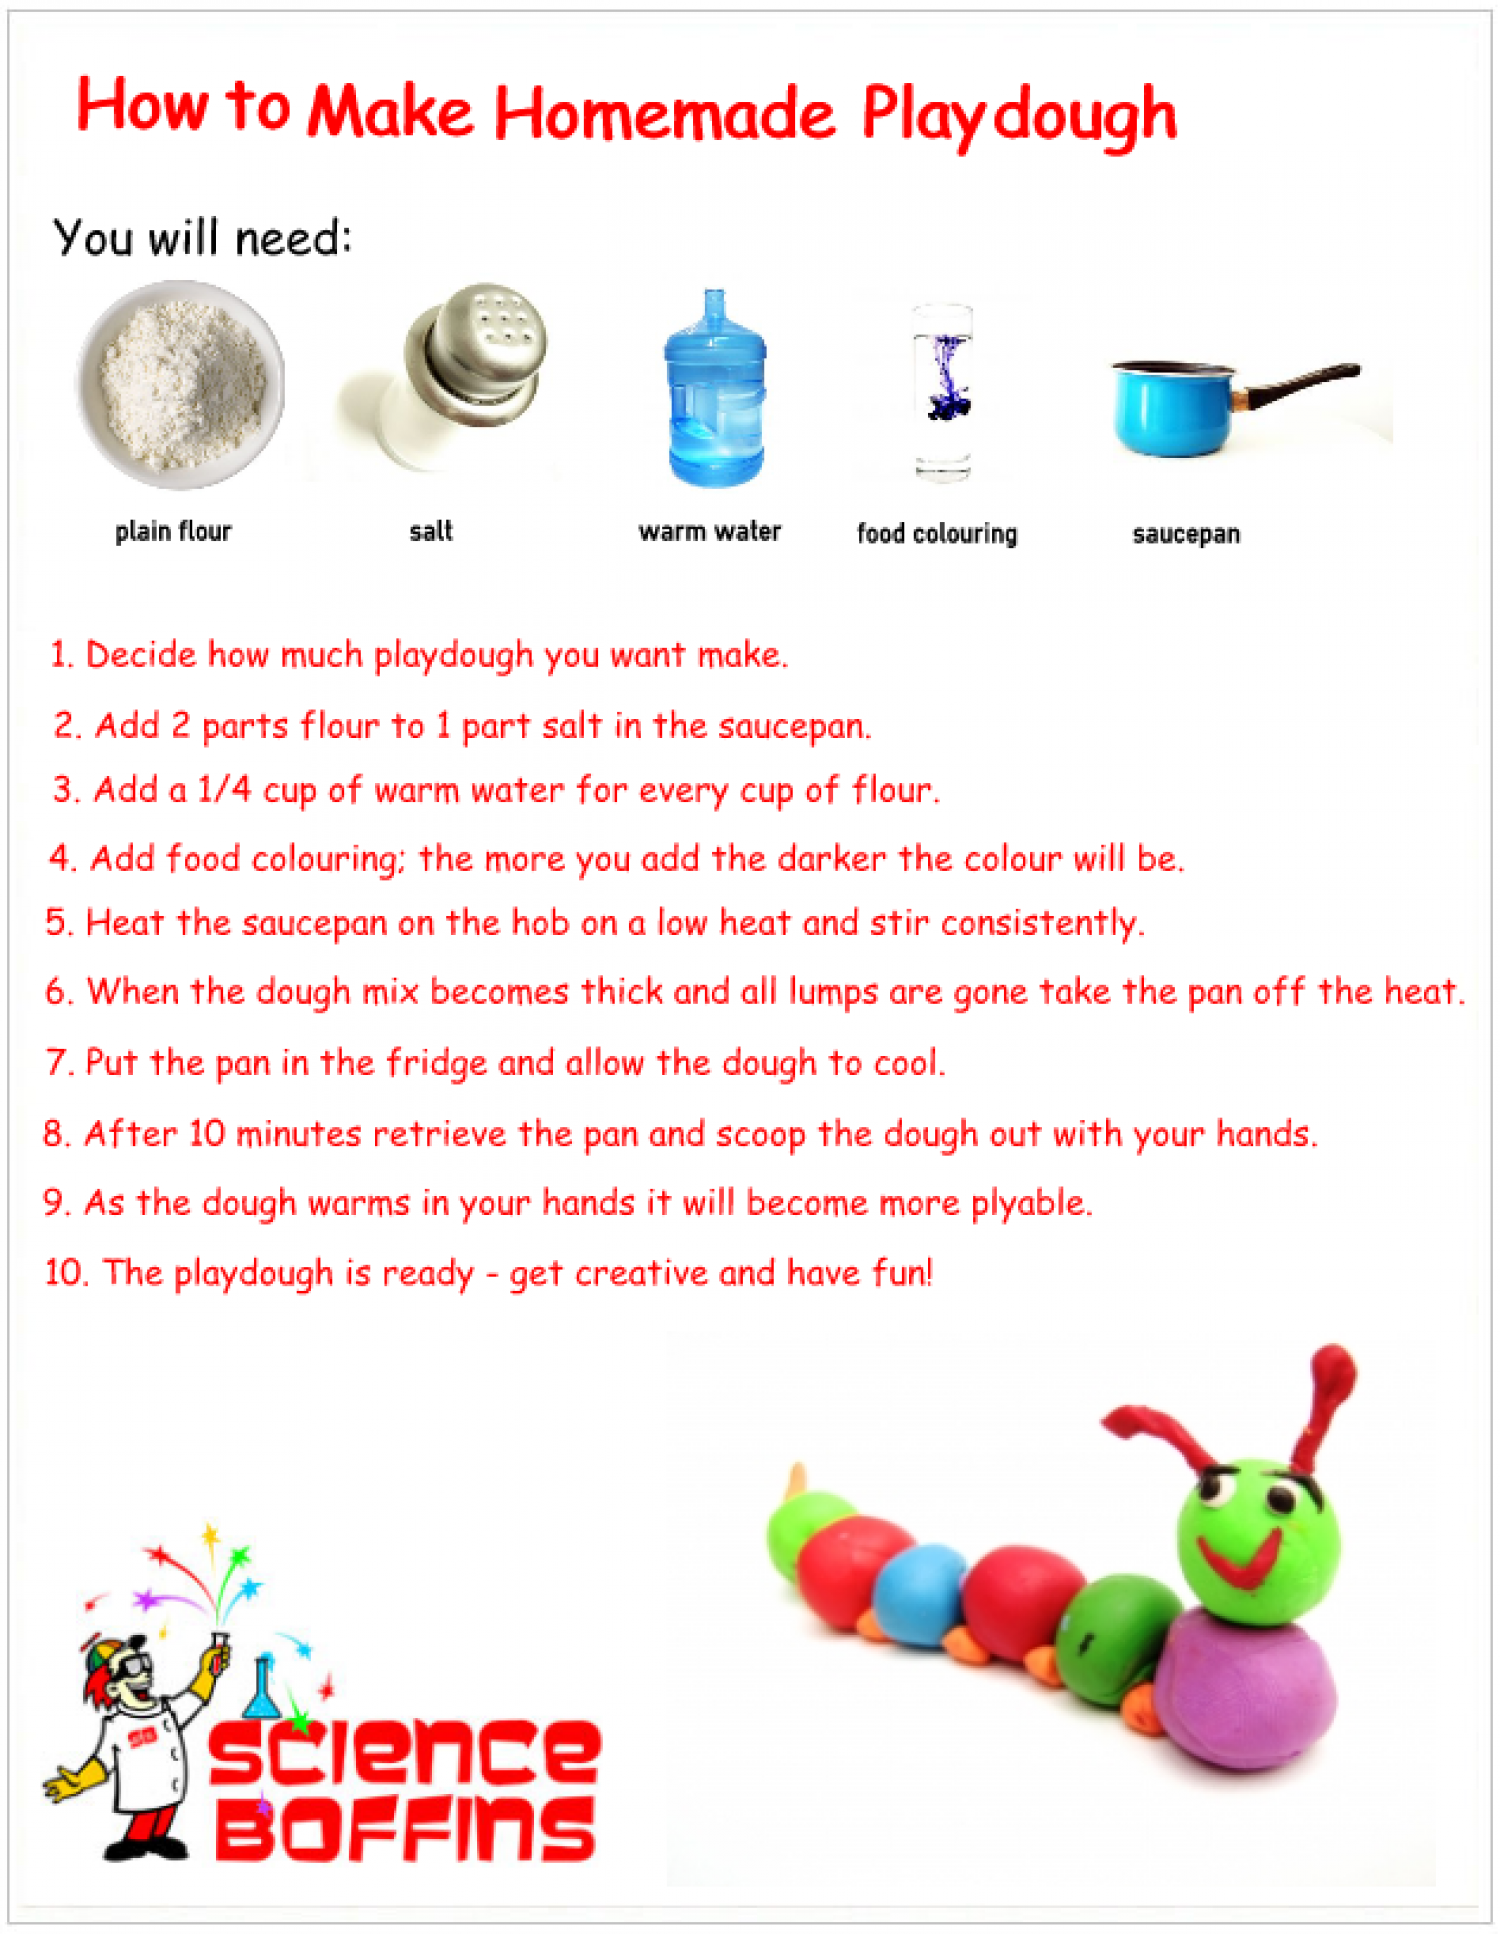 How To Make PlayDough Infographic